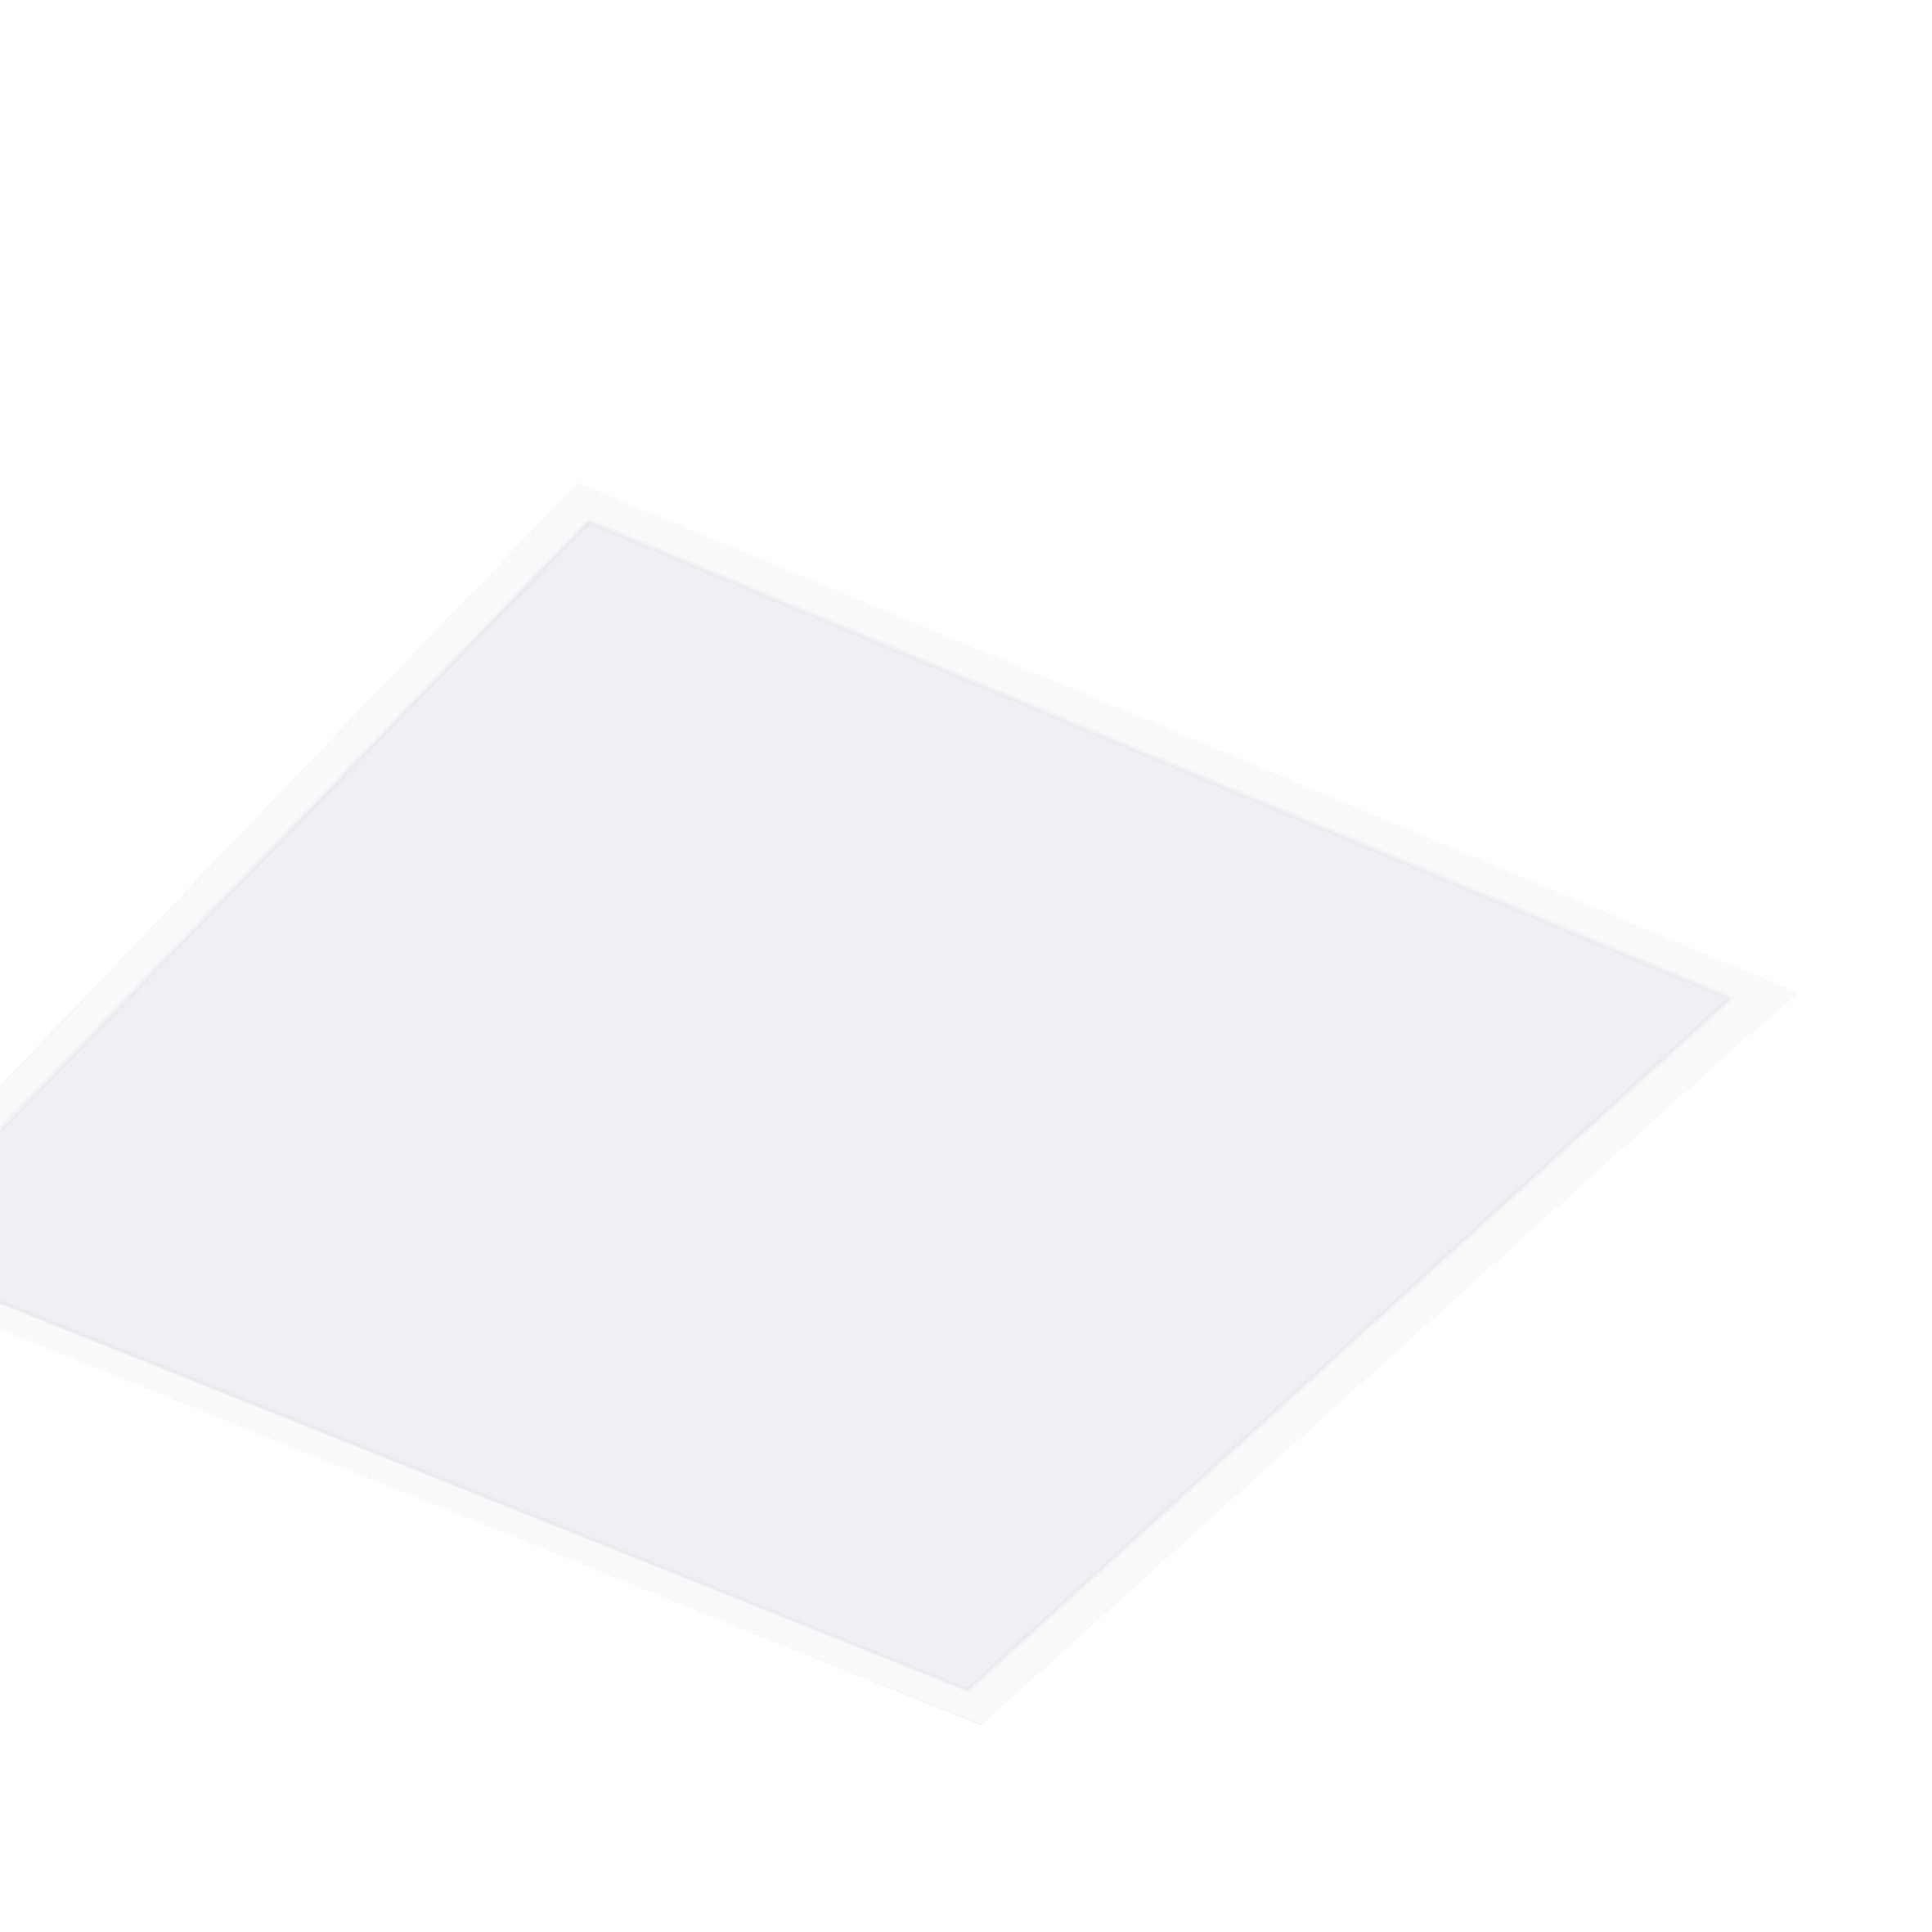 Led panel 60x60 48W recessed white Board with Driver included